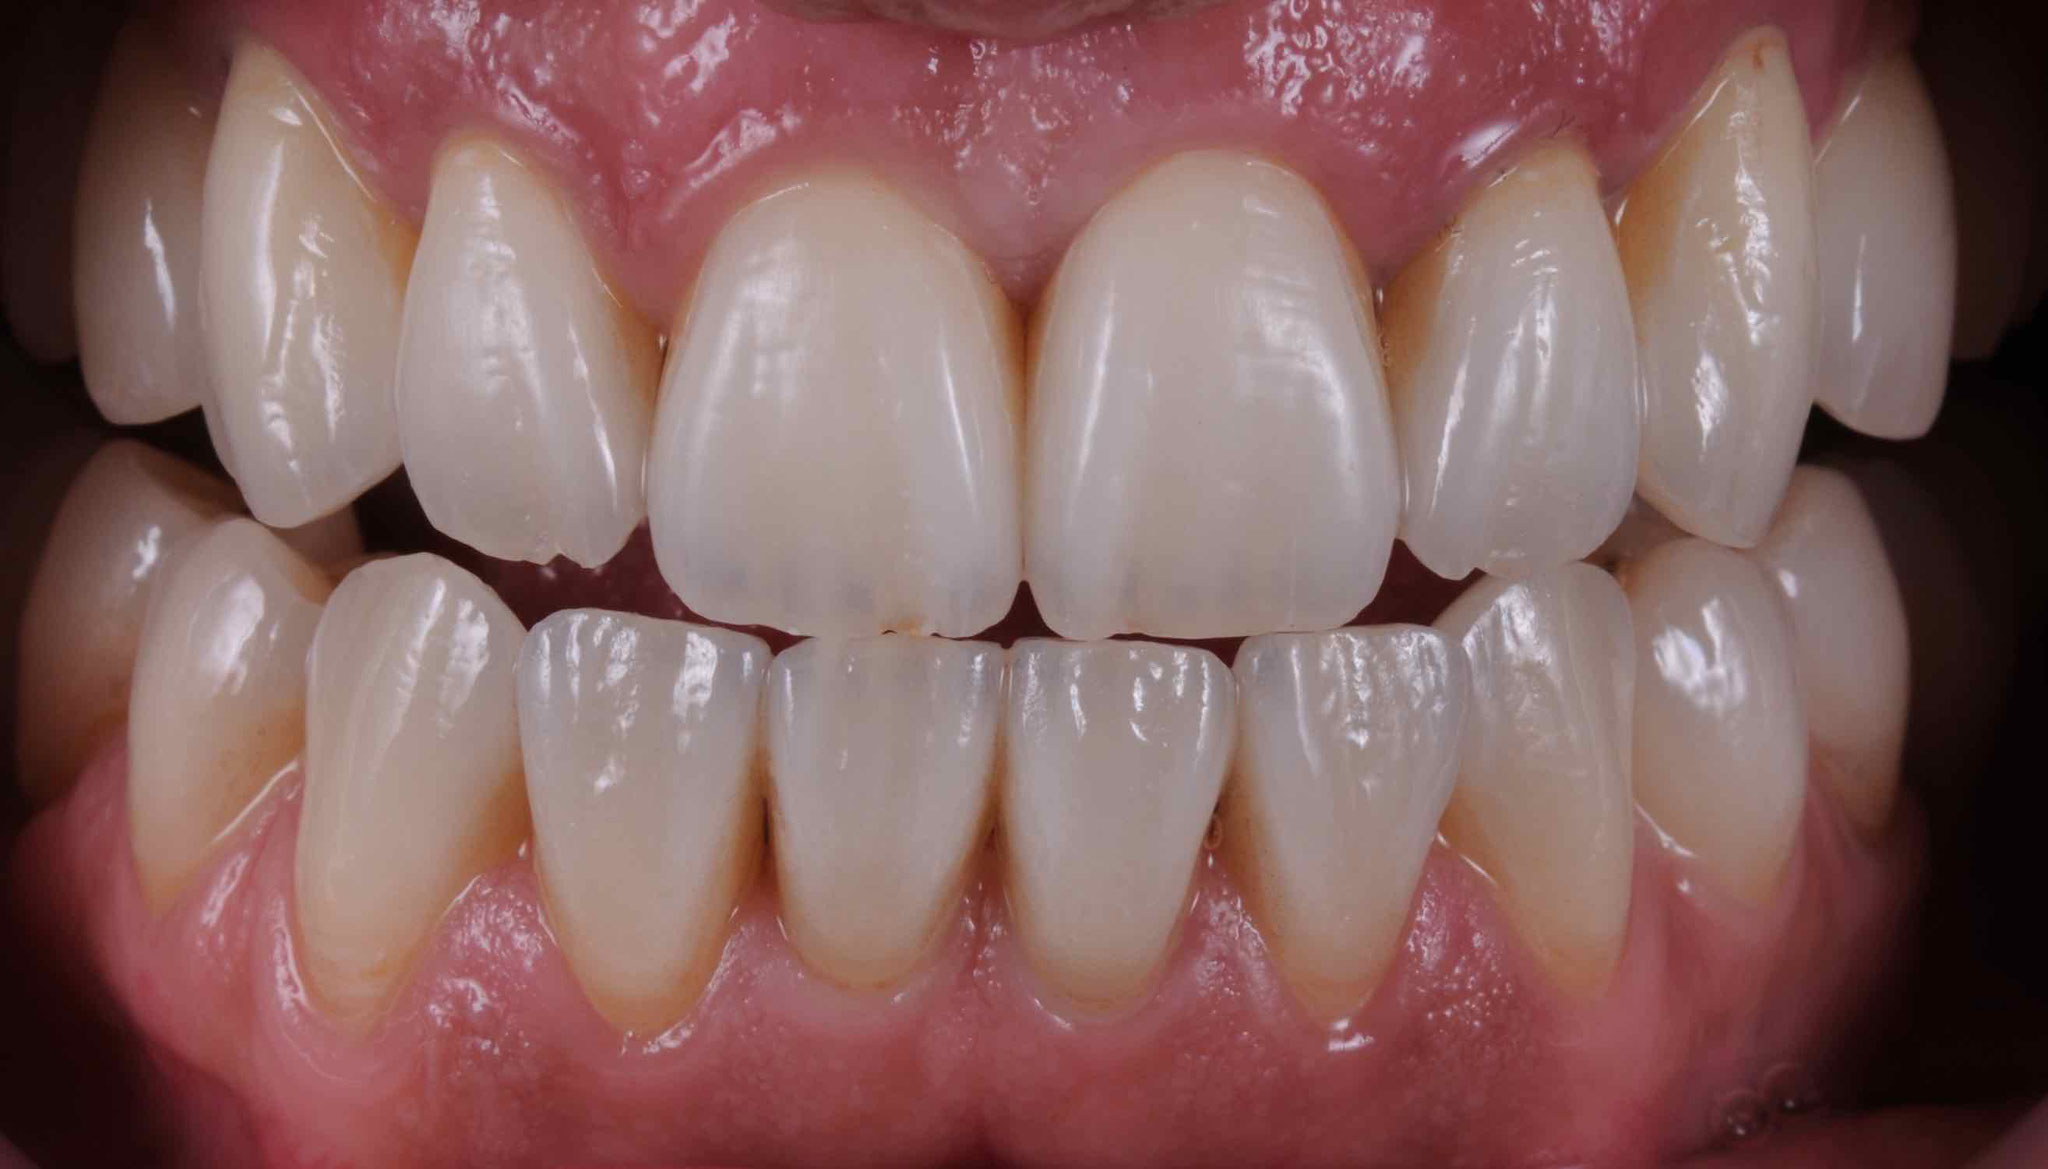 Case-4. 6 Crowns upper jaw and veneers on lower jaw after 3 years